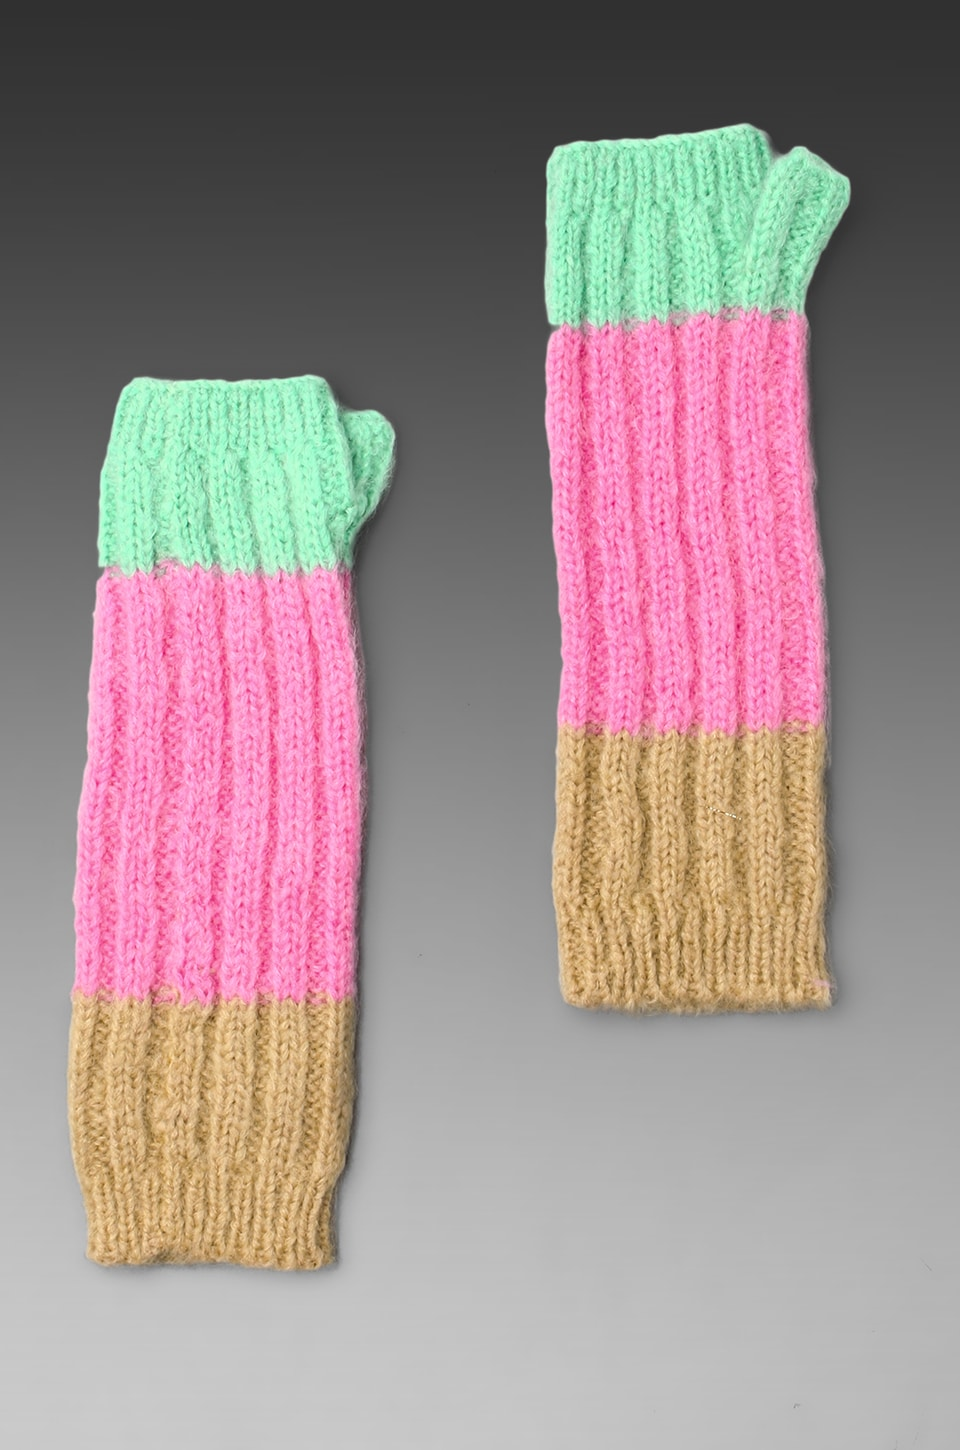 Juicy Couture Mohair Colorblock Fingerless Gloves in Pink Topaz Colorblock